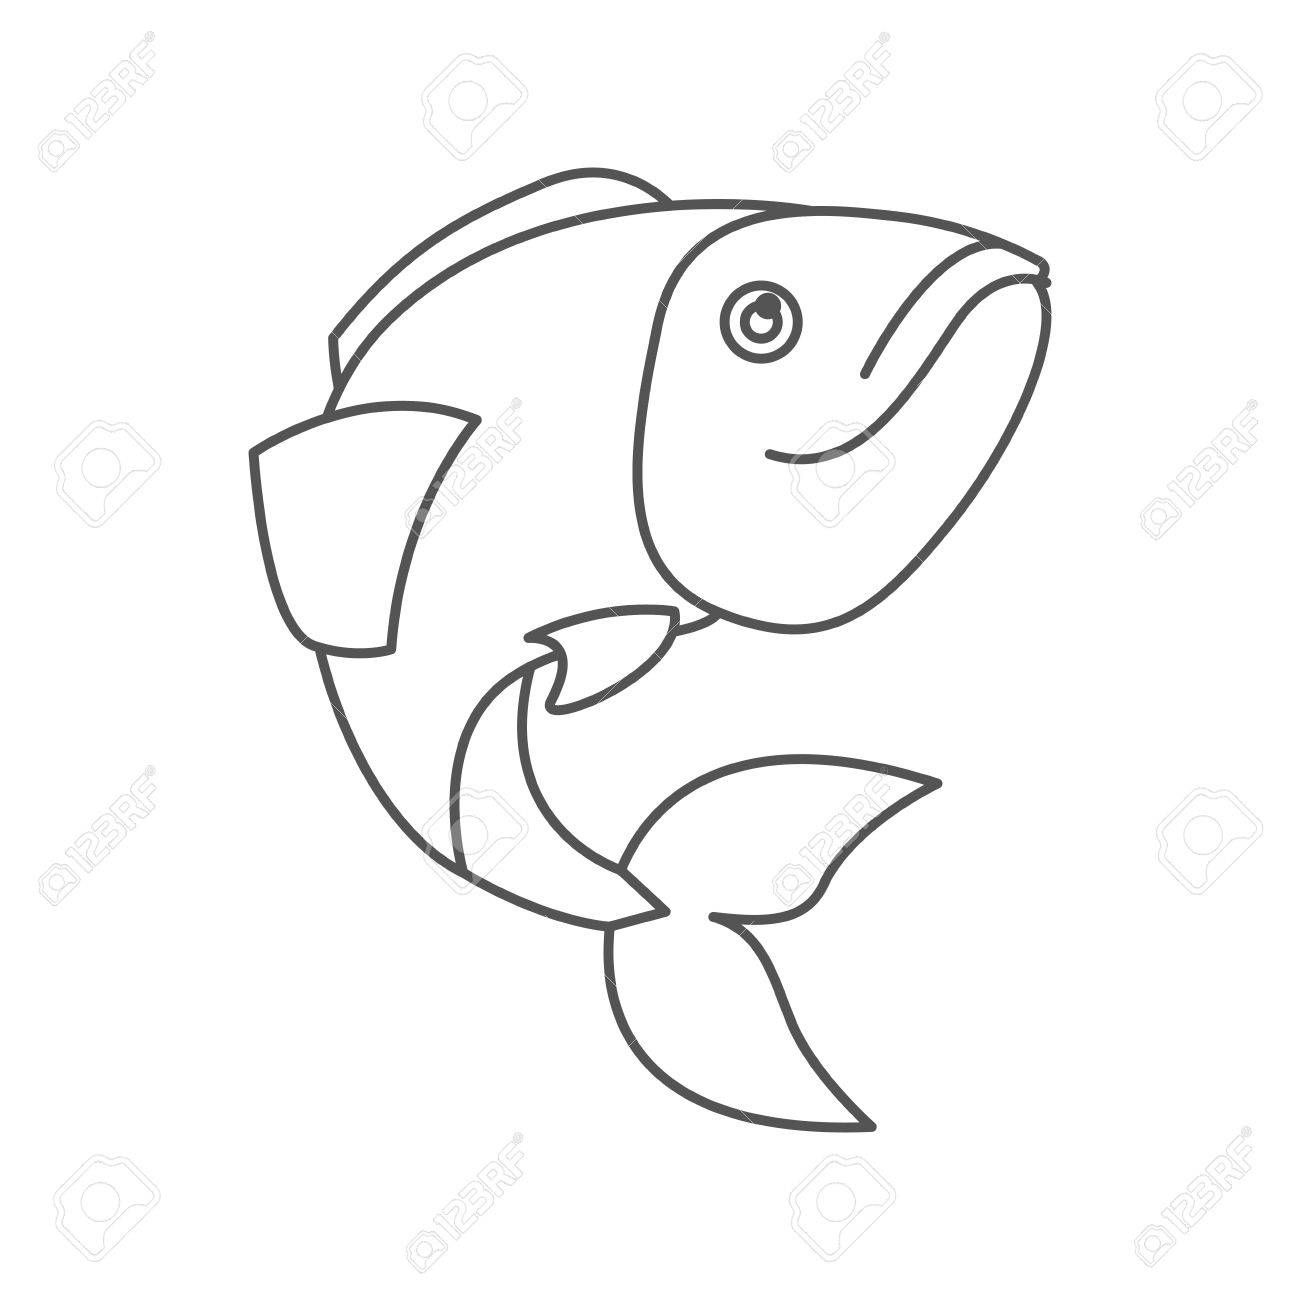 1300x1300 Sketch Silhouette Of Largemouth Bass Fish Vector Illustration